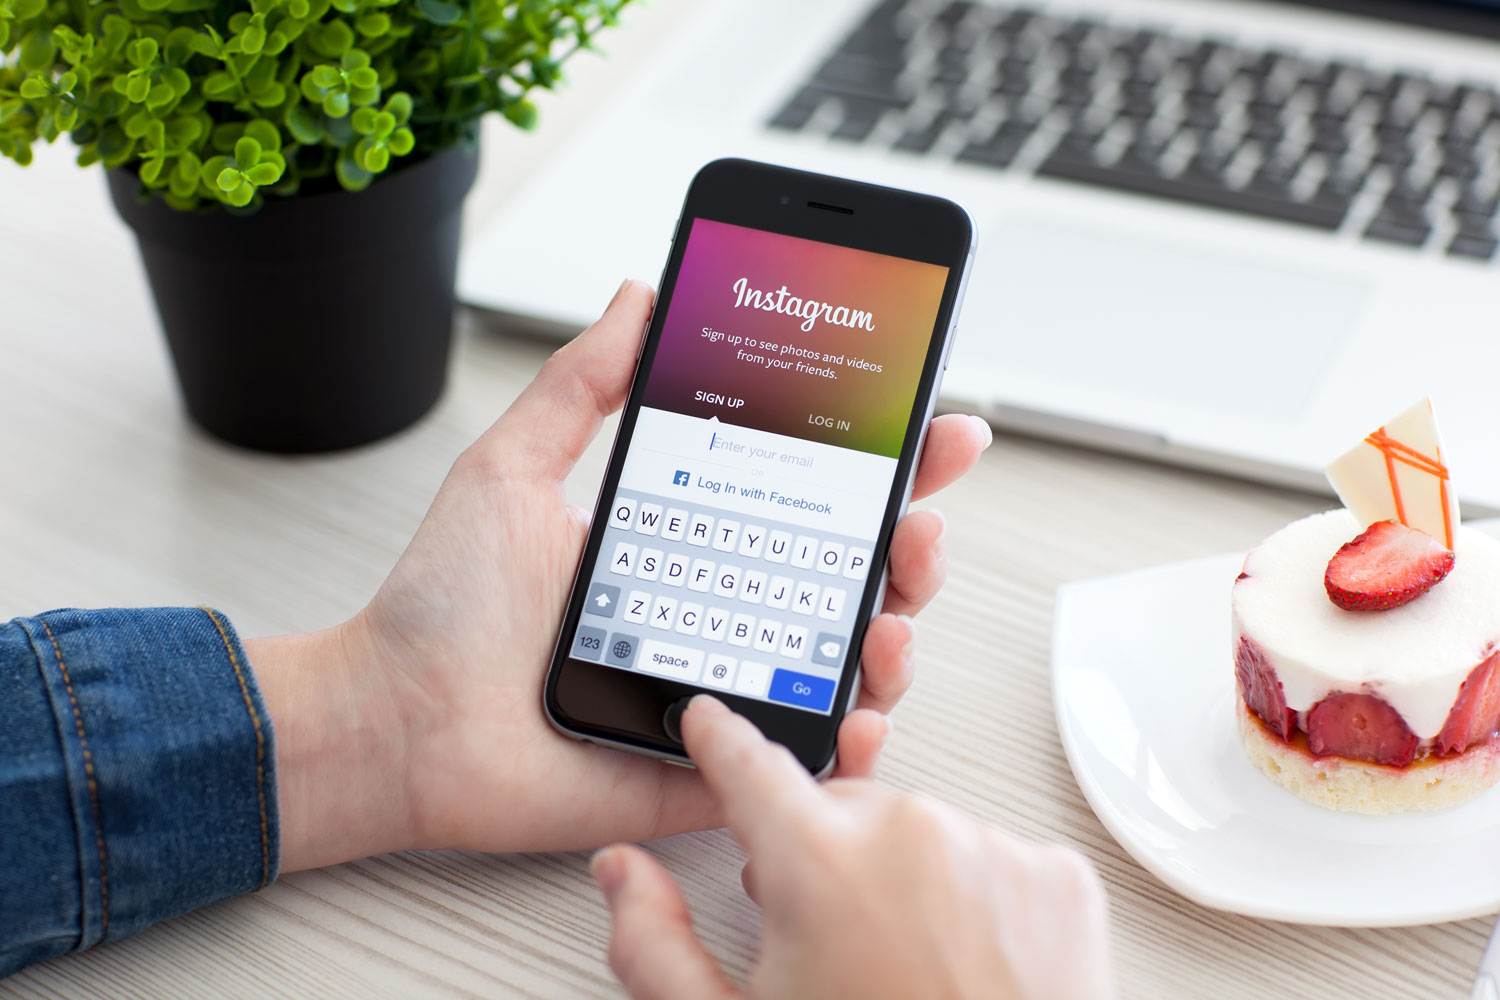 Instagram adds new features to curb abuse, foster a positive community